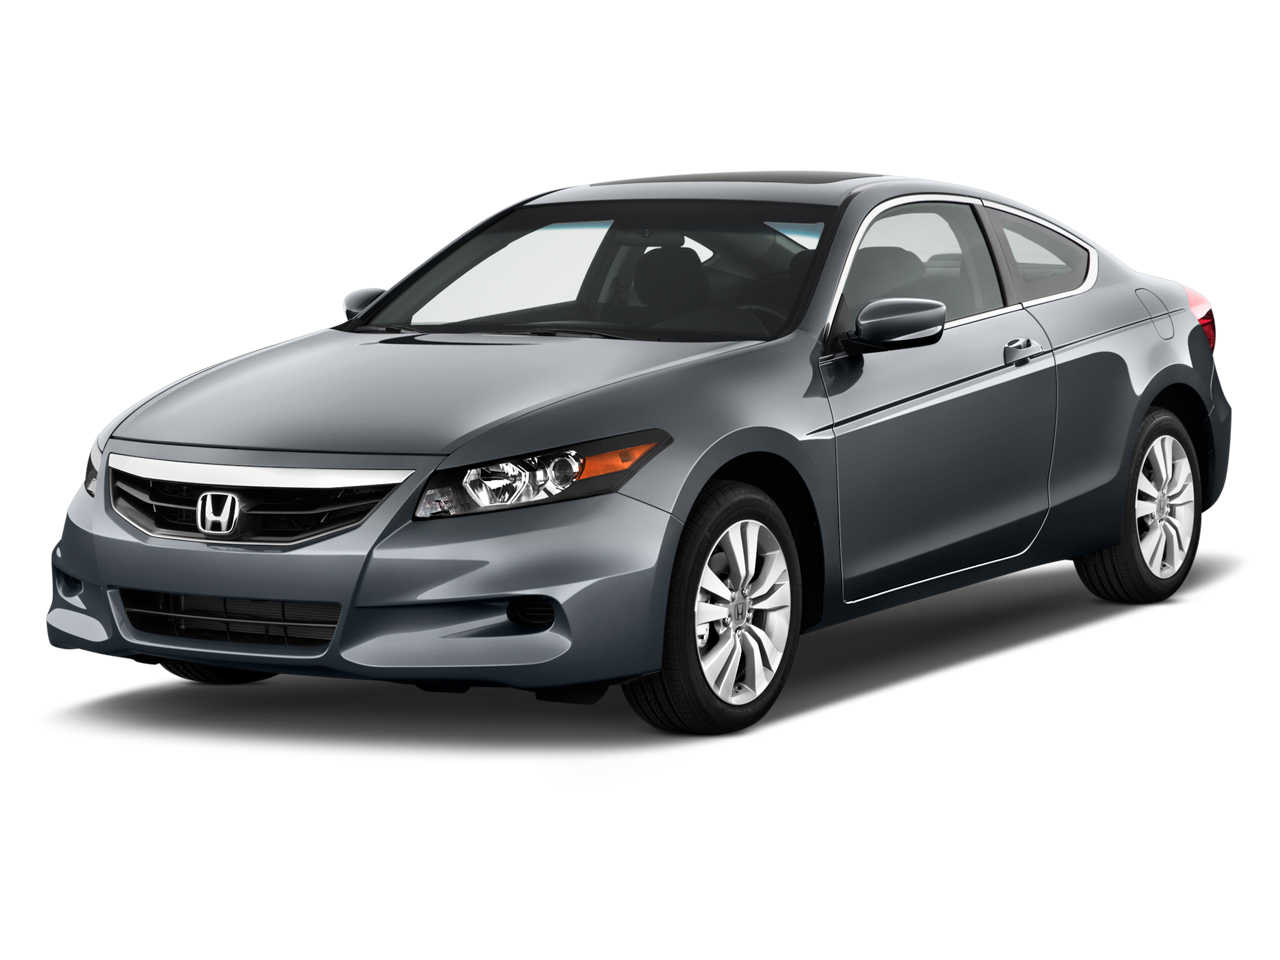 2012 Honda Accord Coupe Review Ratings Specs Prices